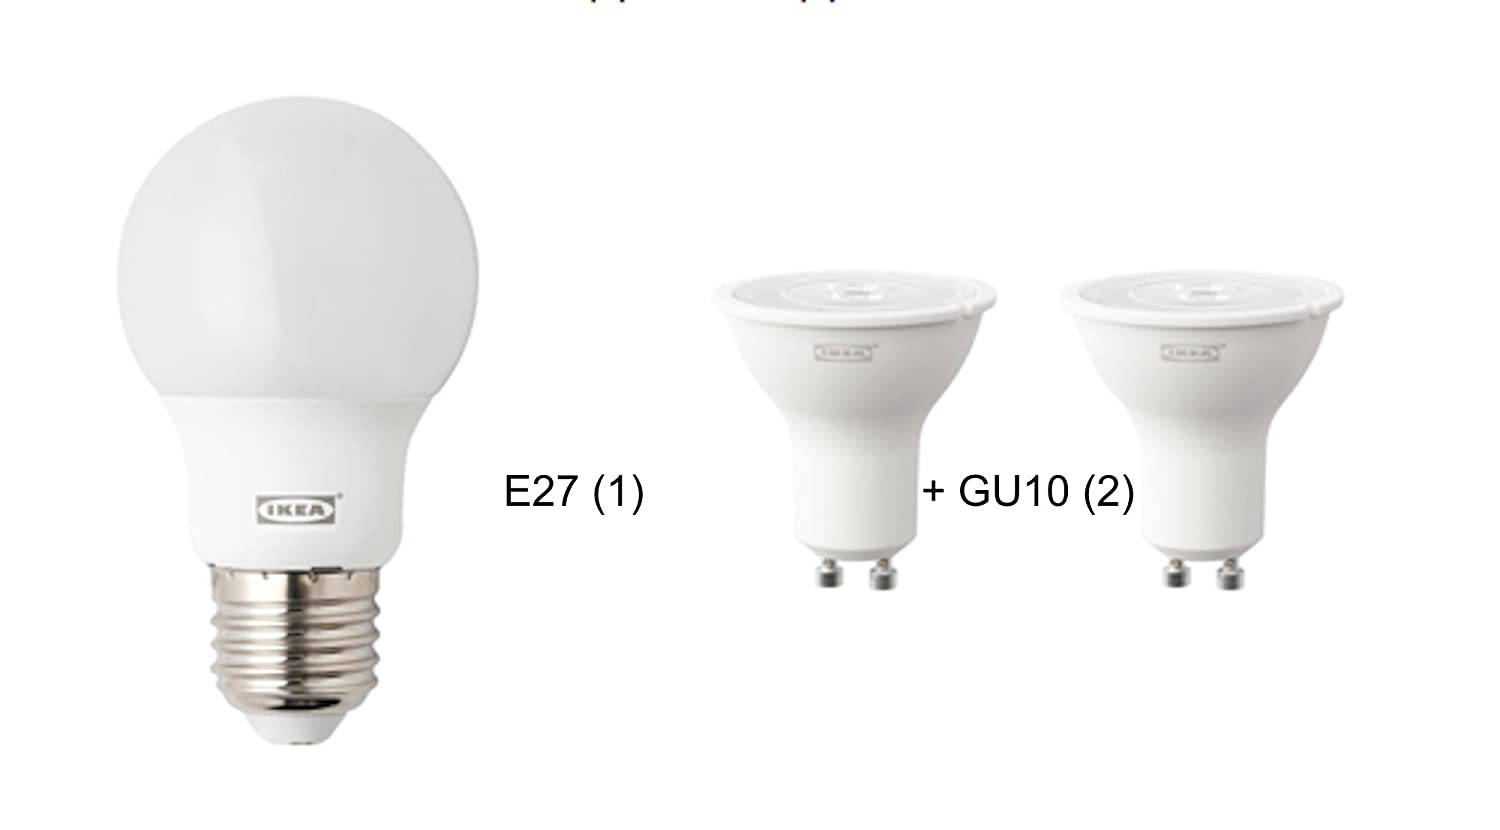 Kit de bombillas LED para IKEA-Lámpara de pie con luz de lectura NOT ...